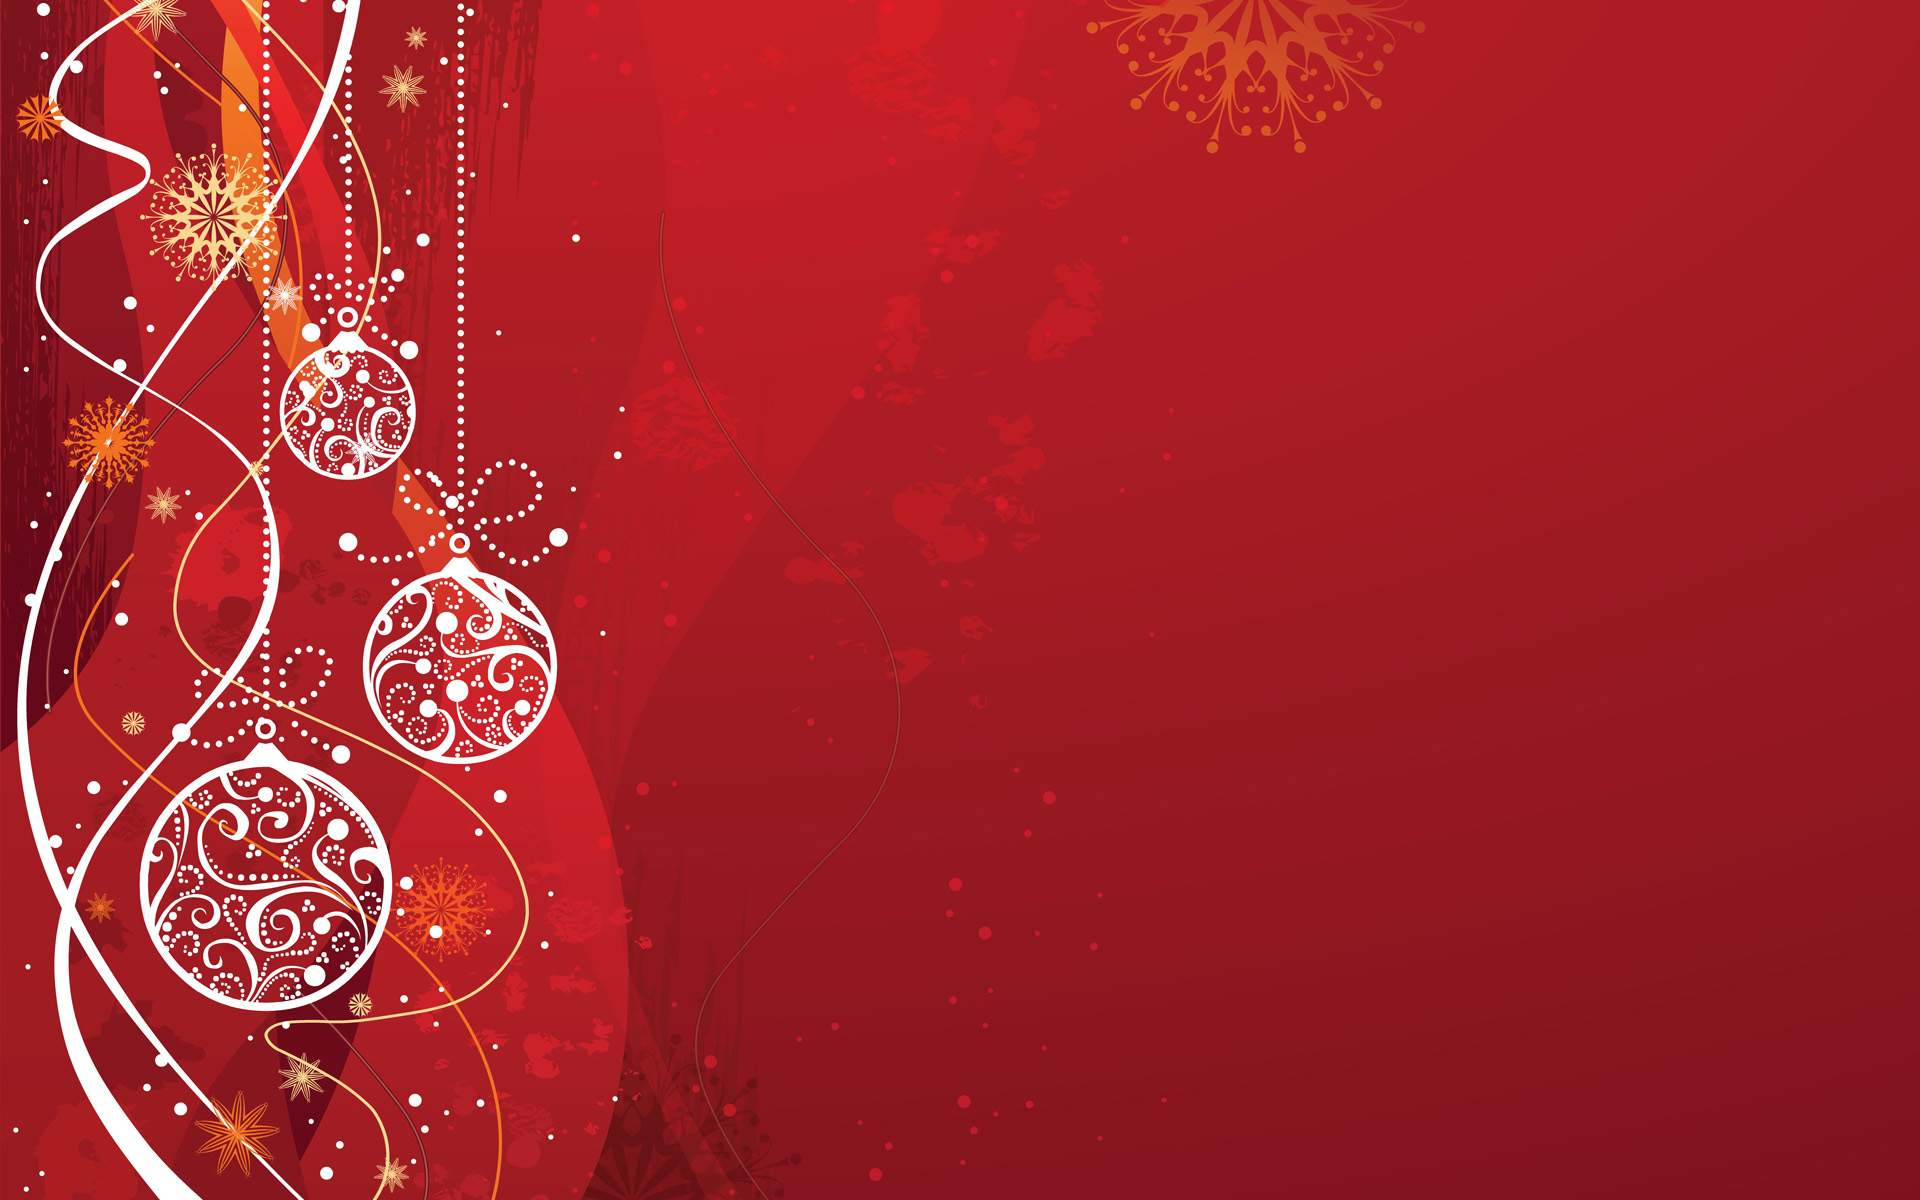 Free Christmas Screensavers Backgrounds Wallpaper Cave